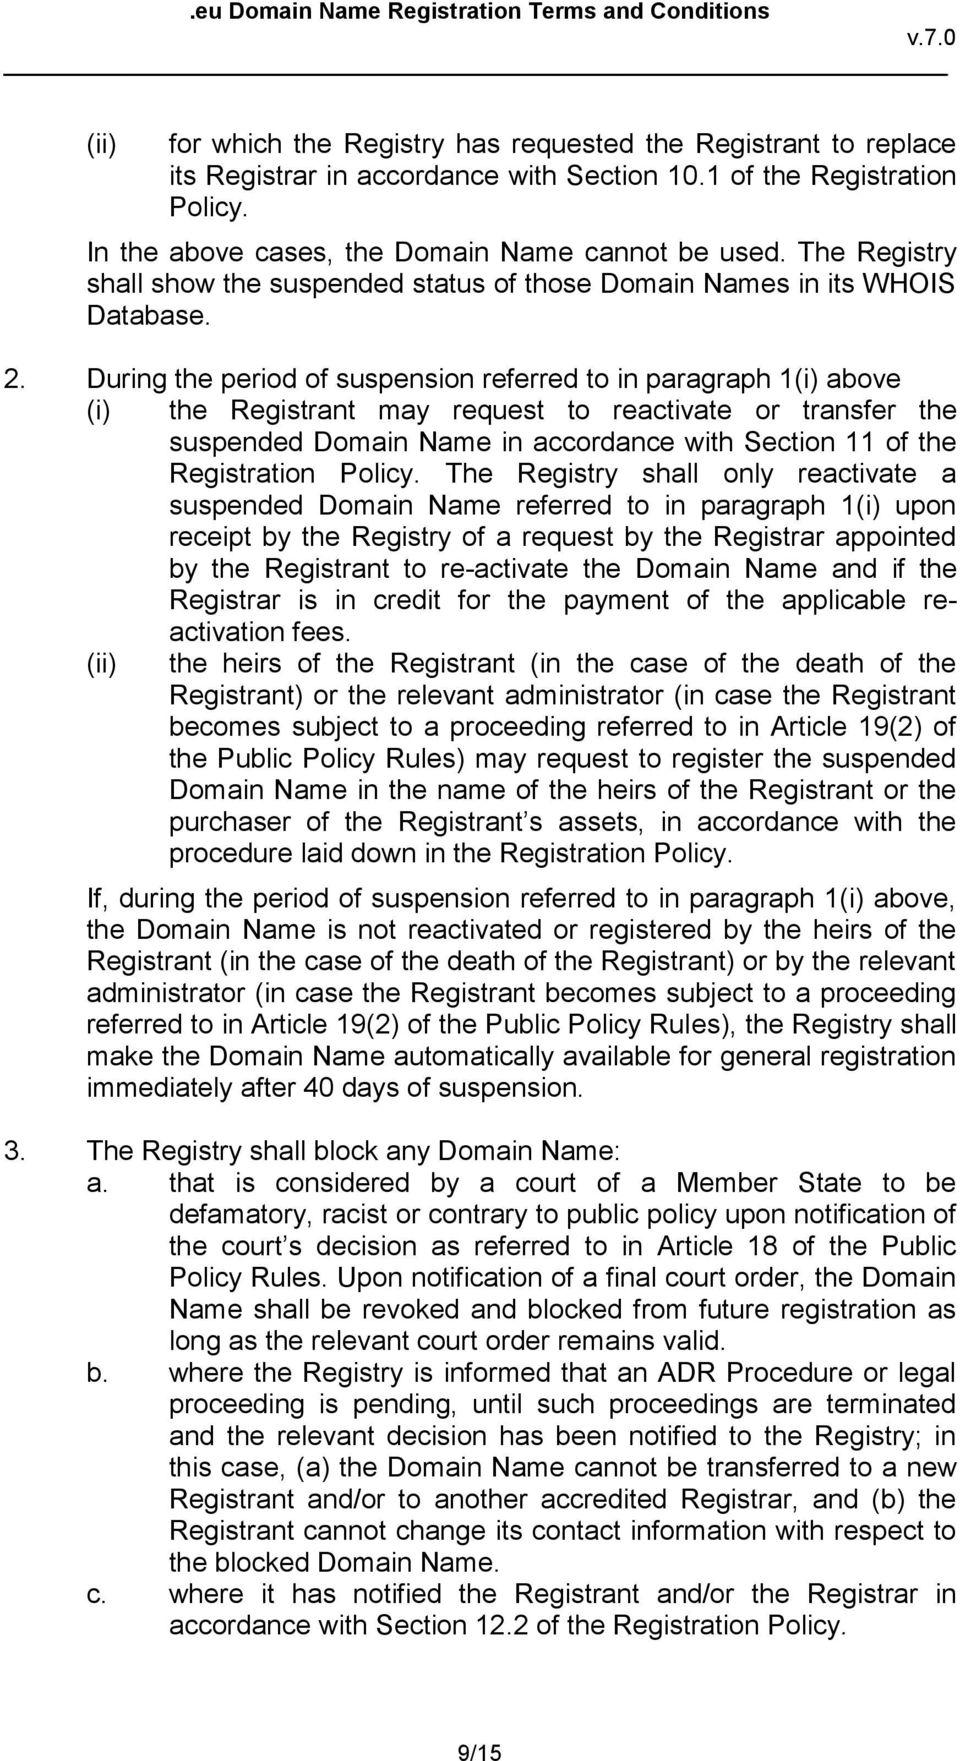 During the period of suspension referred to in paragraph 1(i) above (i) the Registrant may request to reactivate or transfer the suspended Domain Name in accordance with Section 11 of the